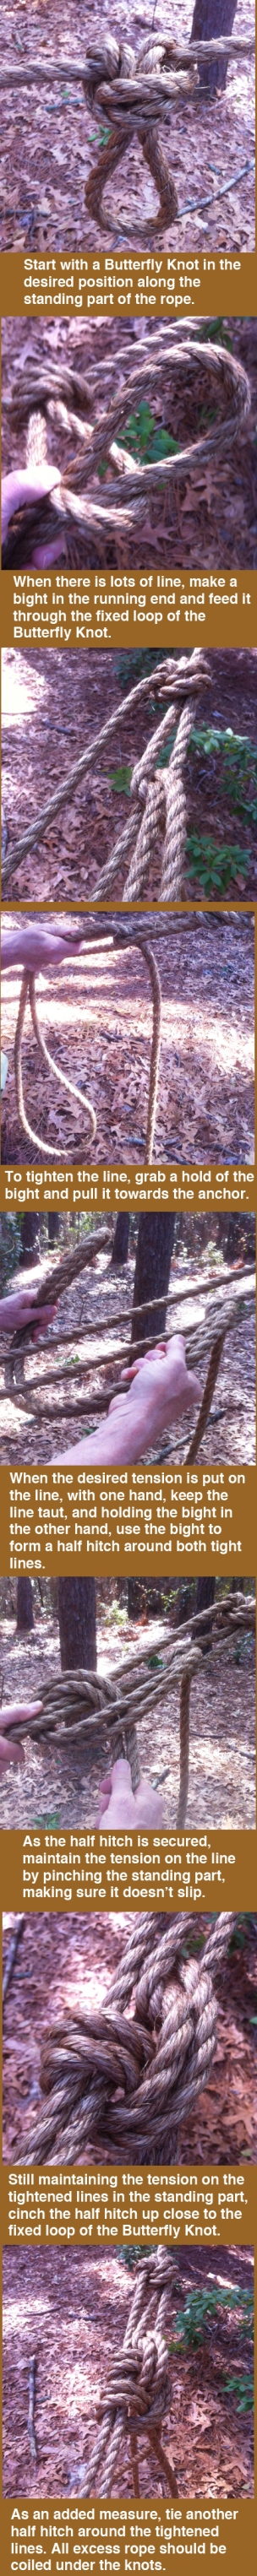 Start with a Butterfly Knot in the desired position along the standing part of the rope. When there is lots of line, make a bight in the running end and feed it through the fixed loop of the Butterfly Knot. To tighten the line, grab a hold of the bight and pull it towards the anchor. When the desired tension is put on the line, with one hand, keep the line taut, and holding the bight in the other hand, use the bight to form a half hitch around both tight lines. As the half hitch is secured, maintain the tension on the line by pinching the standing part, making sure it doesn't slip. Still maintaining the tension on the tightened lines in the standing part, cinch the half hitch up close to the fixed loop of the Butterfly Knot. As an added measure, tie another half hitch around the tightened lines. All excess rope should be  coiled under the knots.